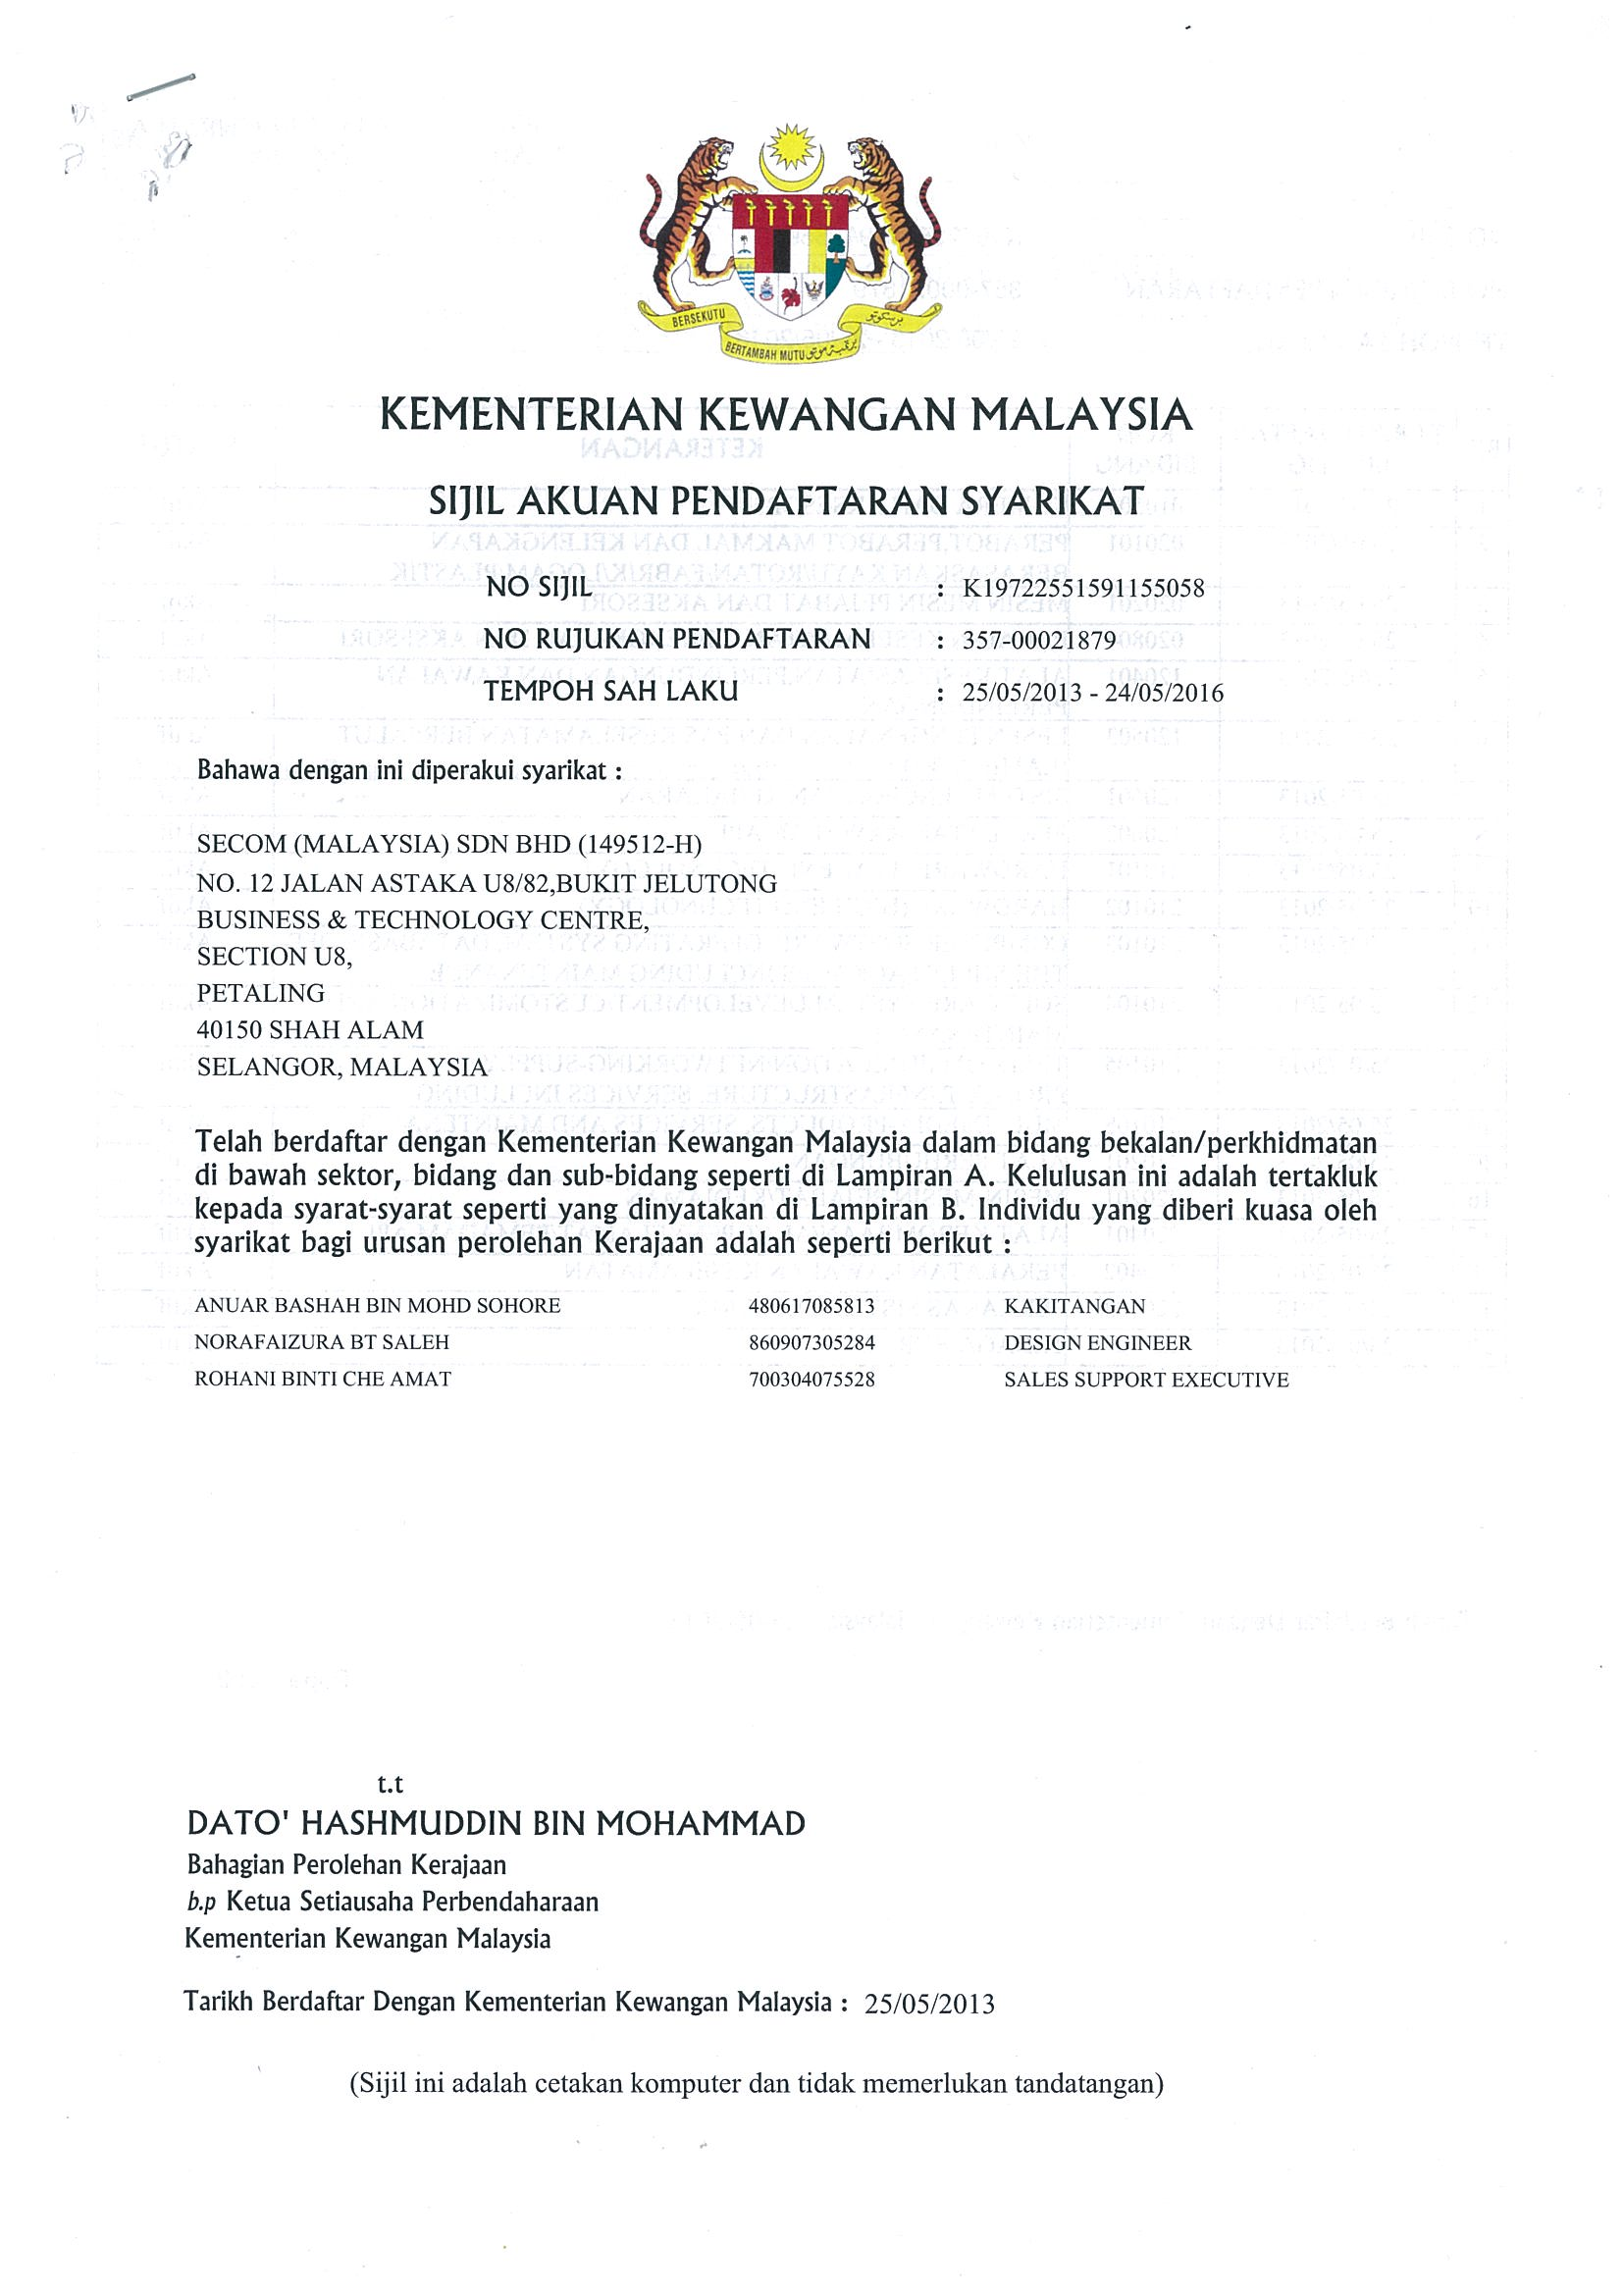 Account Registration, by Ministry of Finance Malaysia